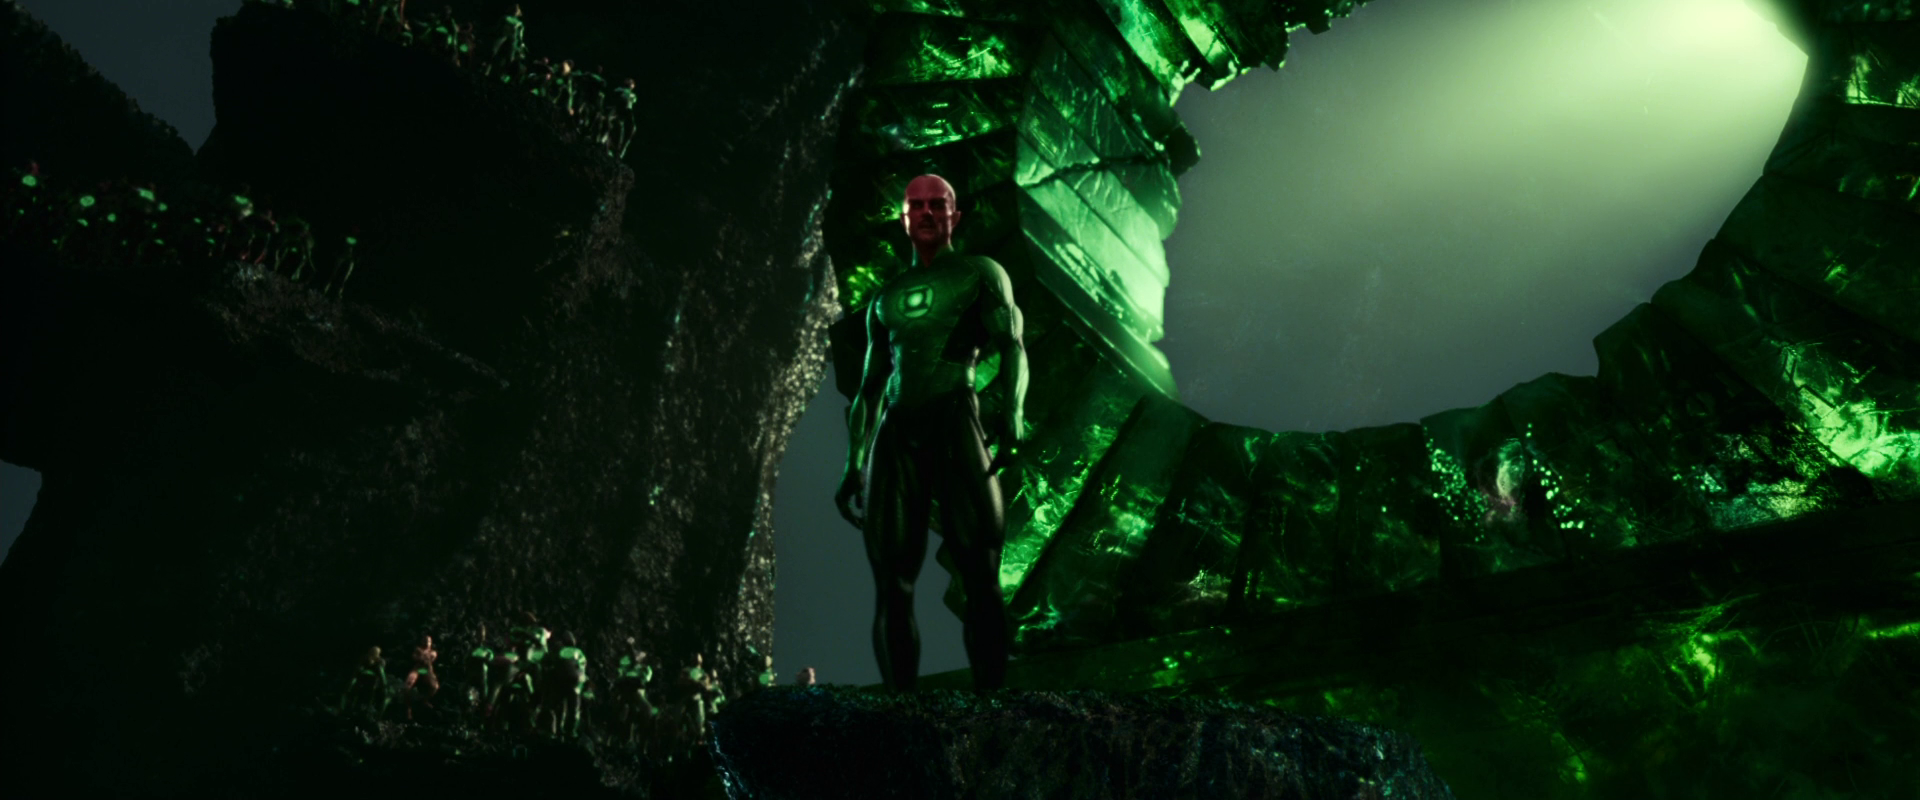 green lantern 2011 extended 1080p bluray dts x264 hidt